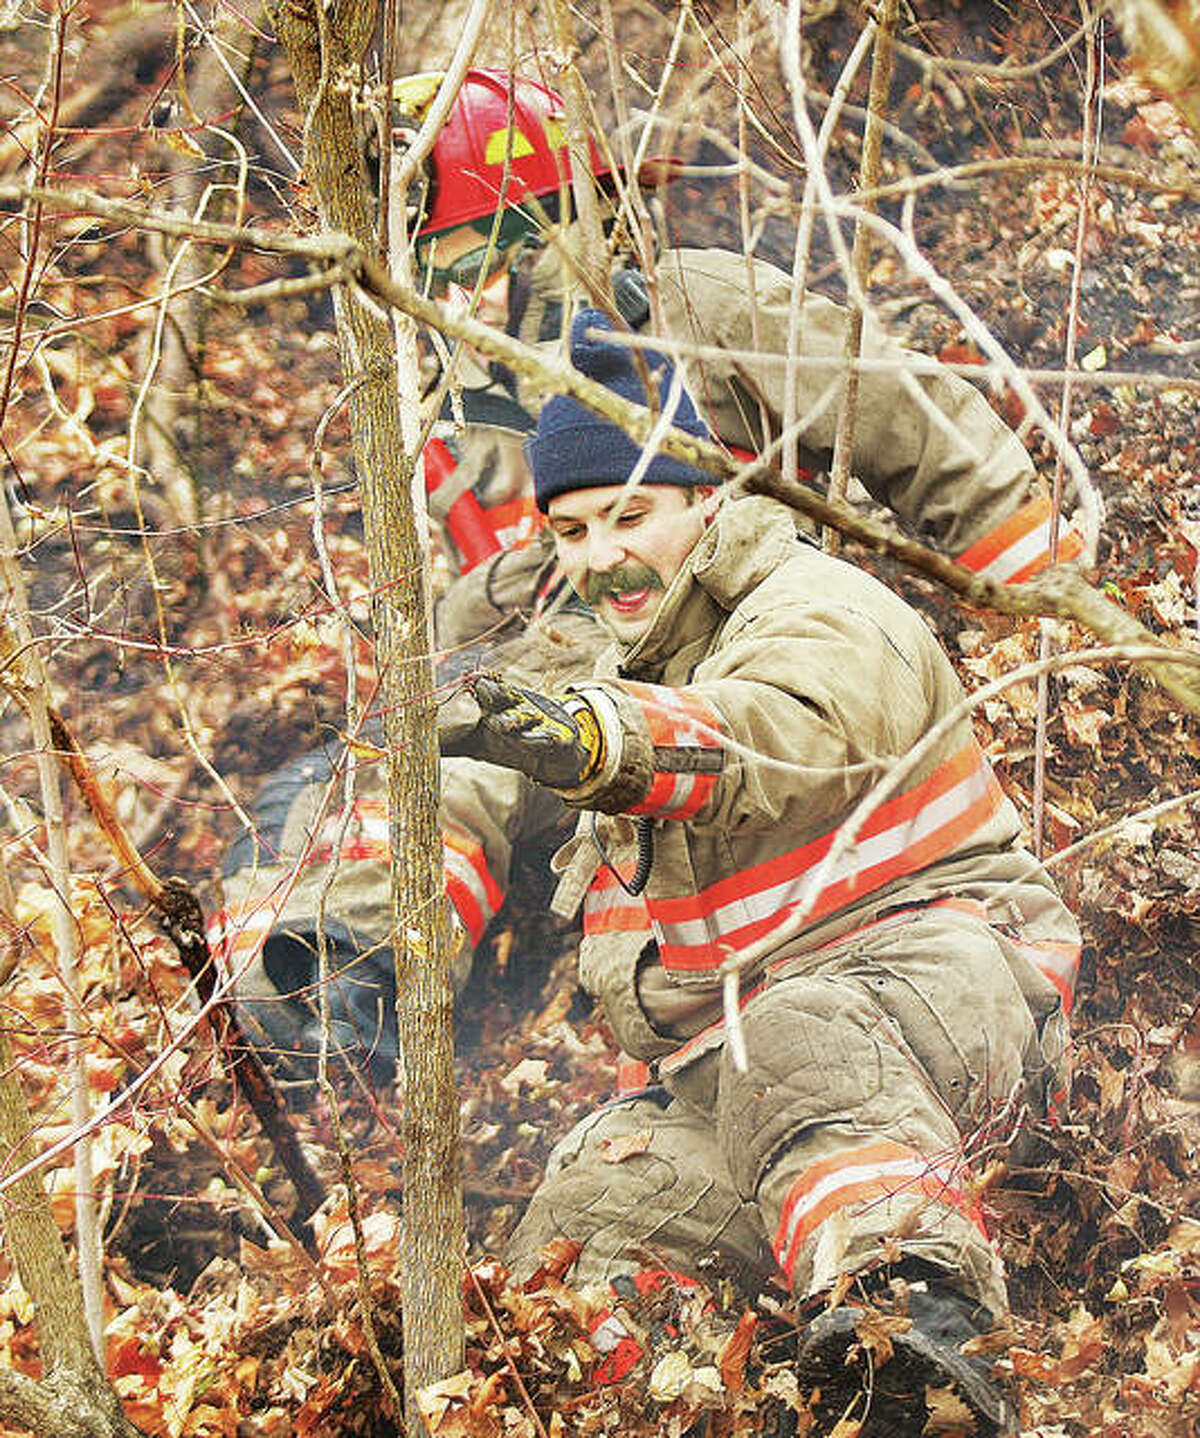 What goes up must come down, according to the law of gravity. Firefighters were learning that first hand again Thursday, as sliding down the side of the bluff was about the only way to get down after climbing up about 60 feet to attack the flames with a hose line.